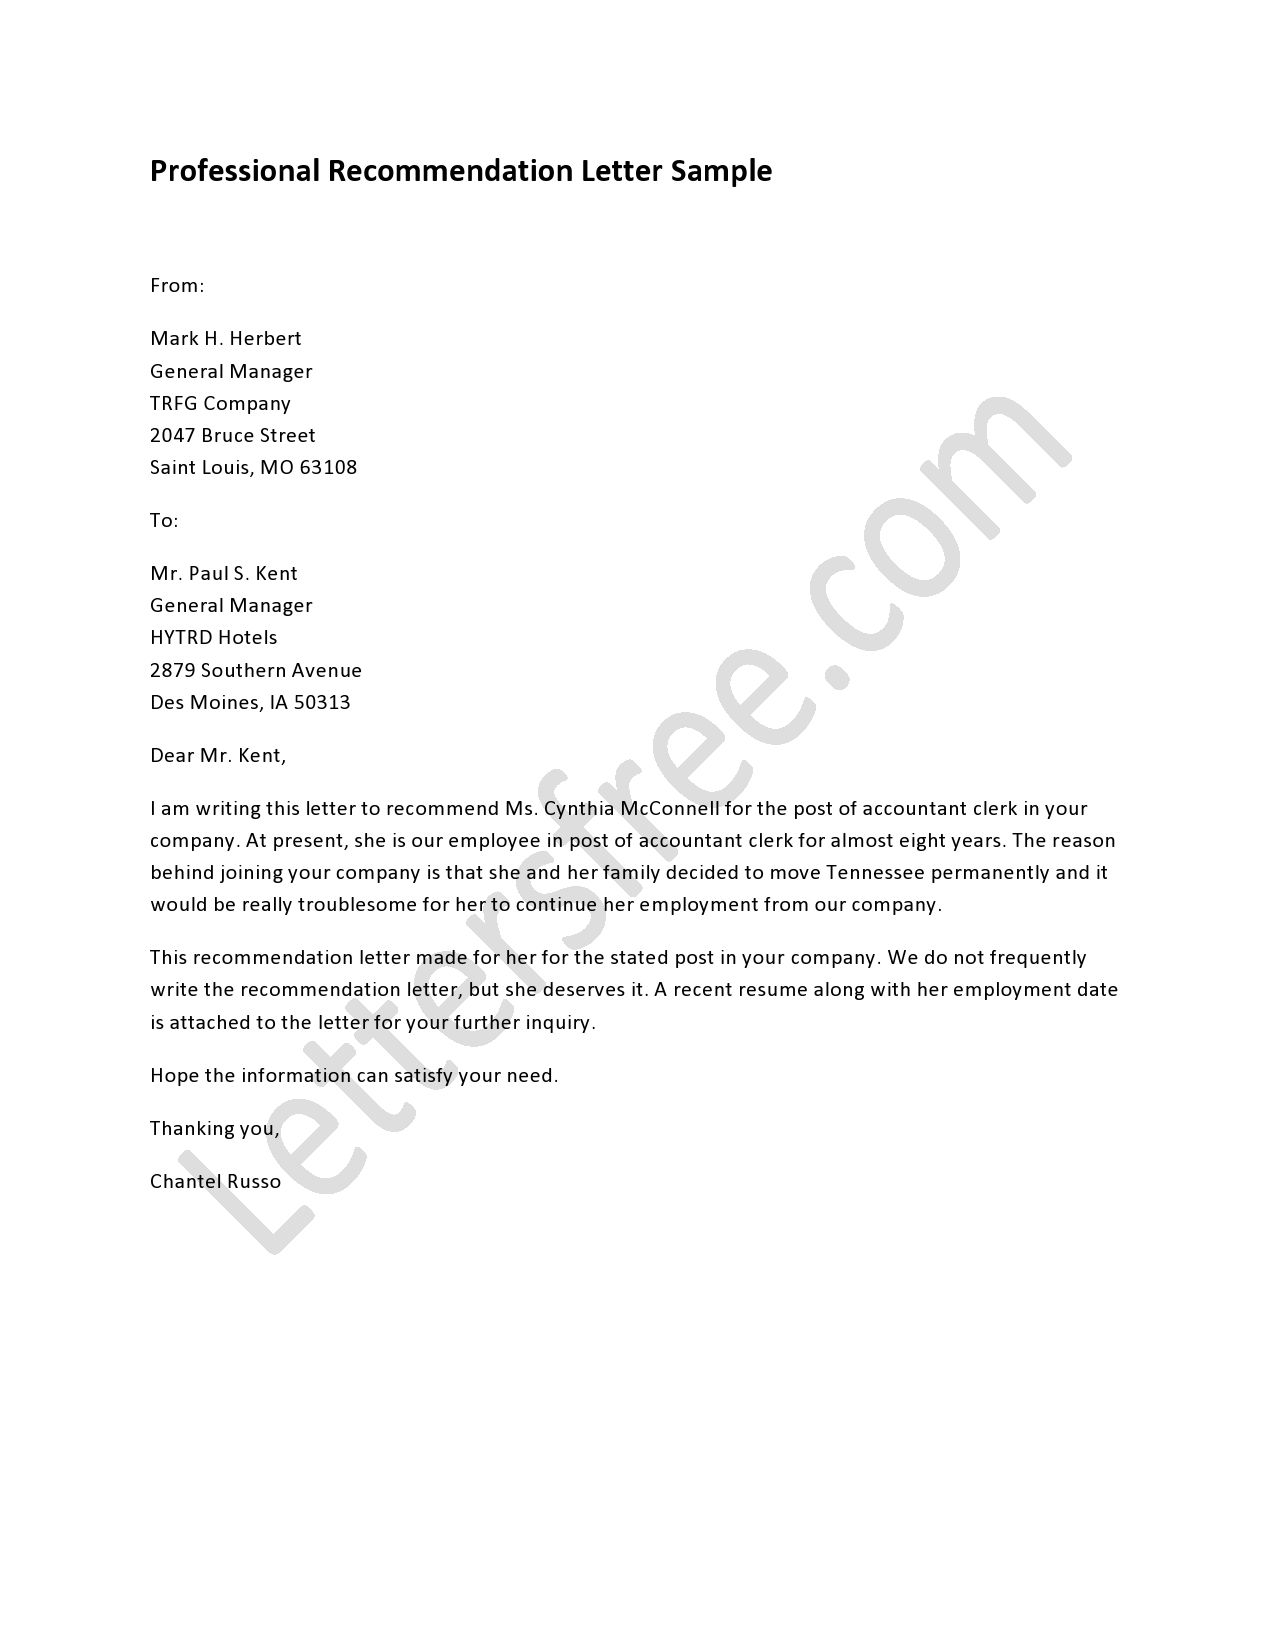 Professional Recommendation Letter  Business Planning Sample